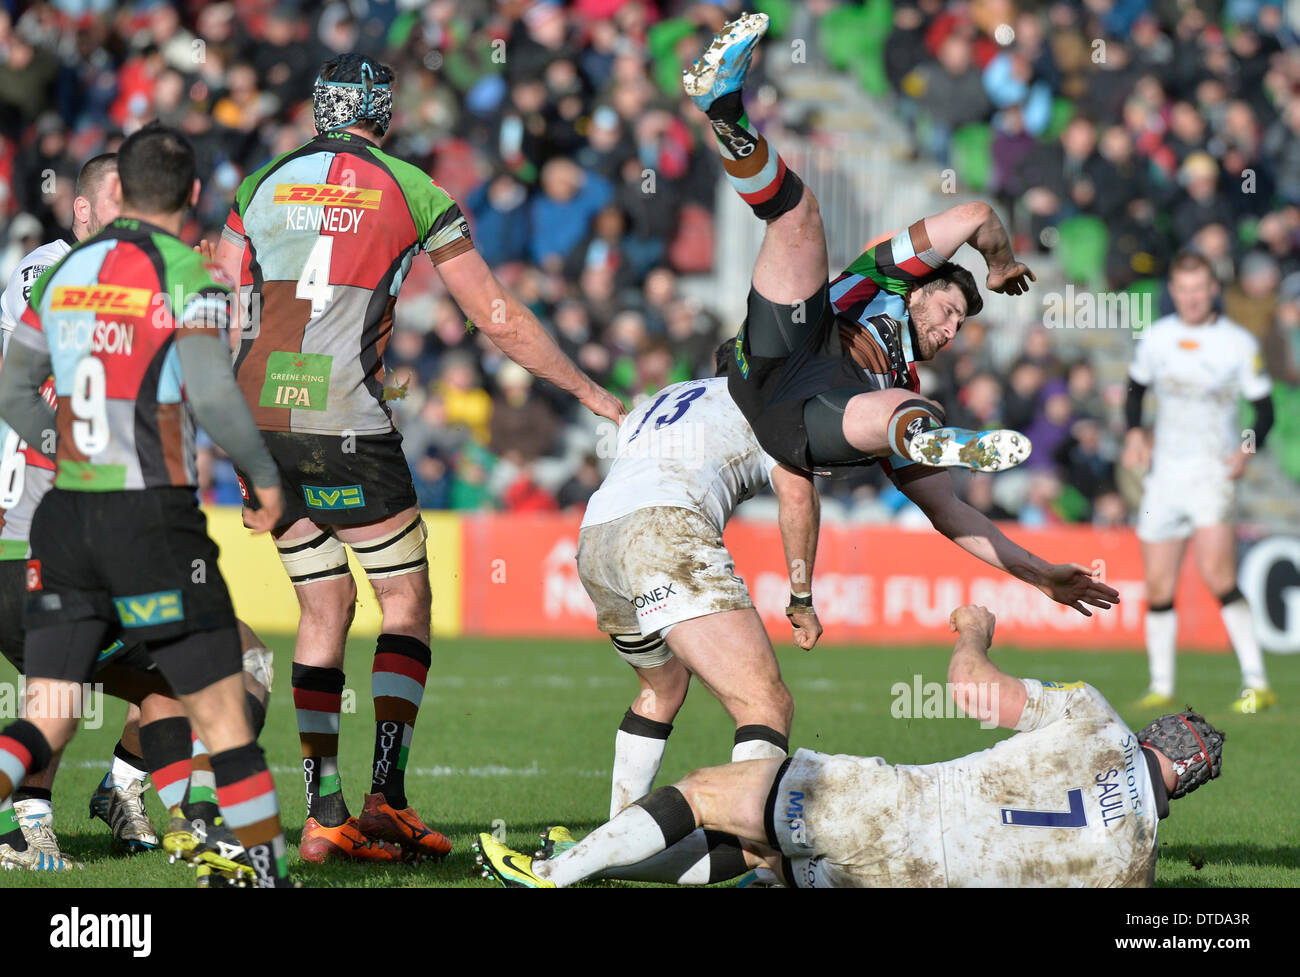 London, UK . Feb 15, 2014. AVIVA Premier League Rugby Harlequins v Newcastle Falcons au Twickenham Stoop Action du match Harlequins a gagné18-14 : Leo Crédit photos sports Mason/Alamy Live News Photo Stock